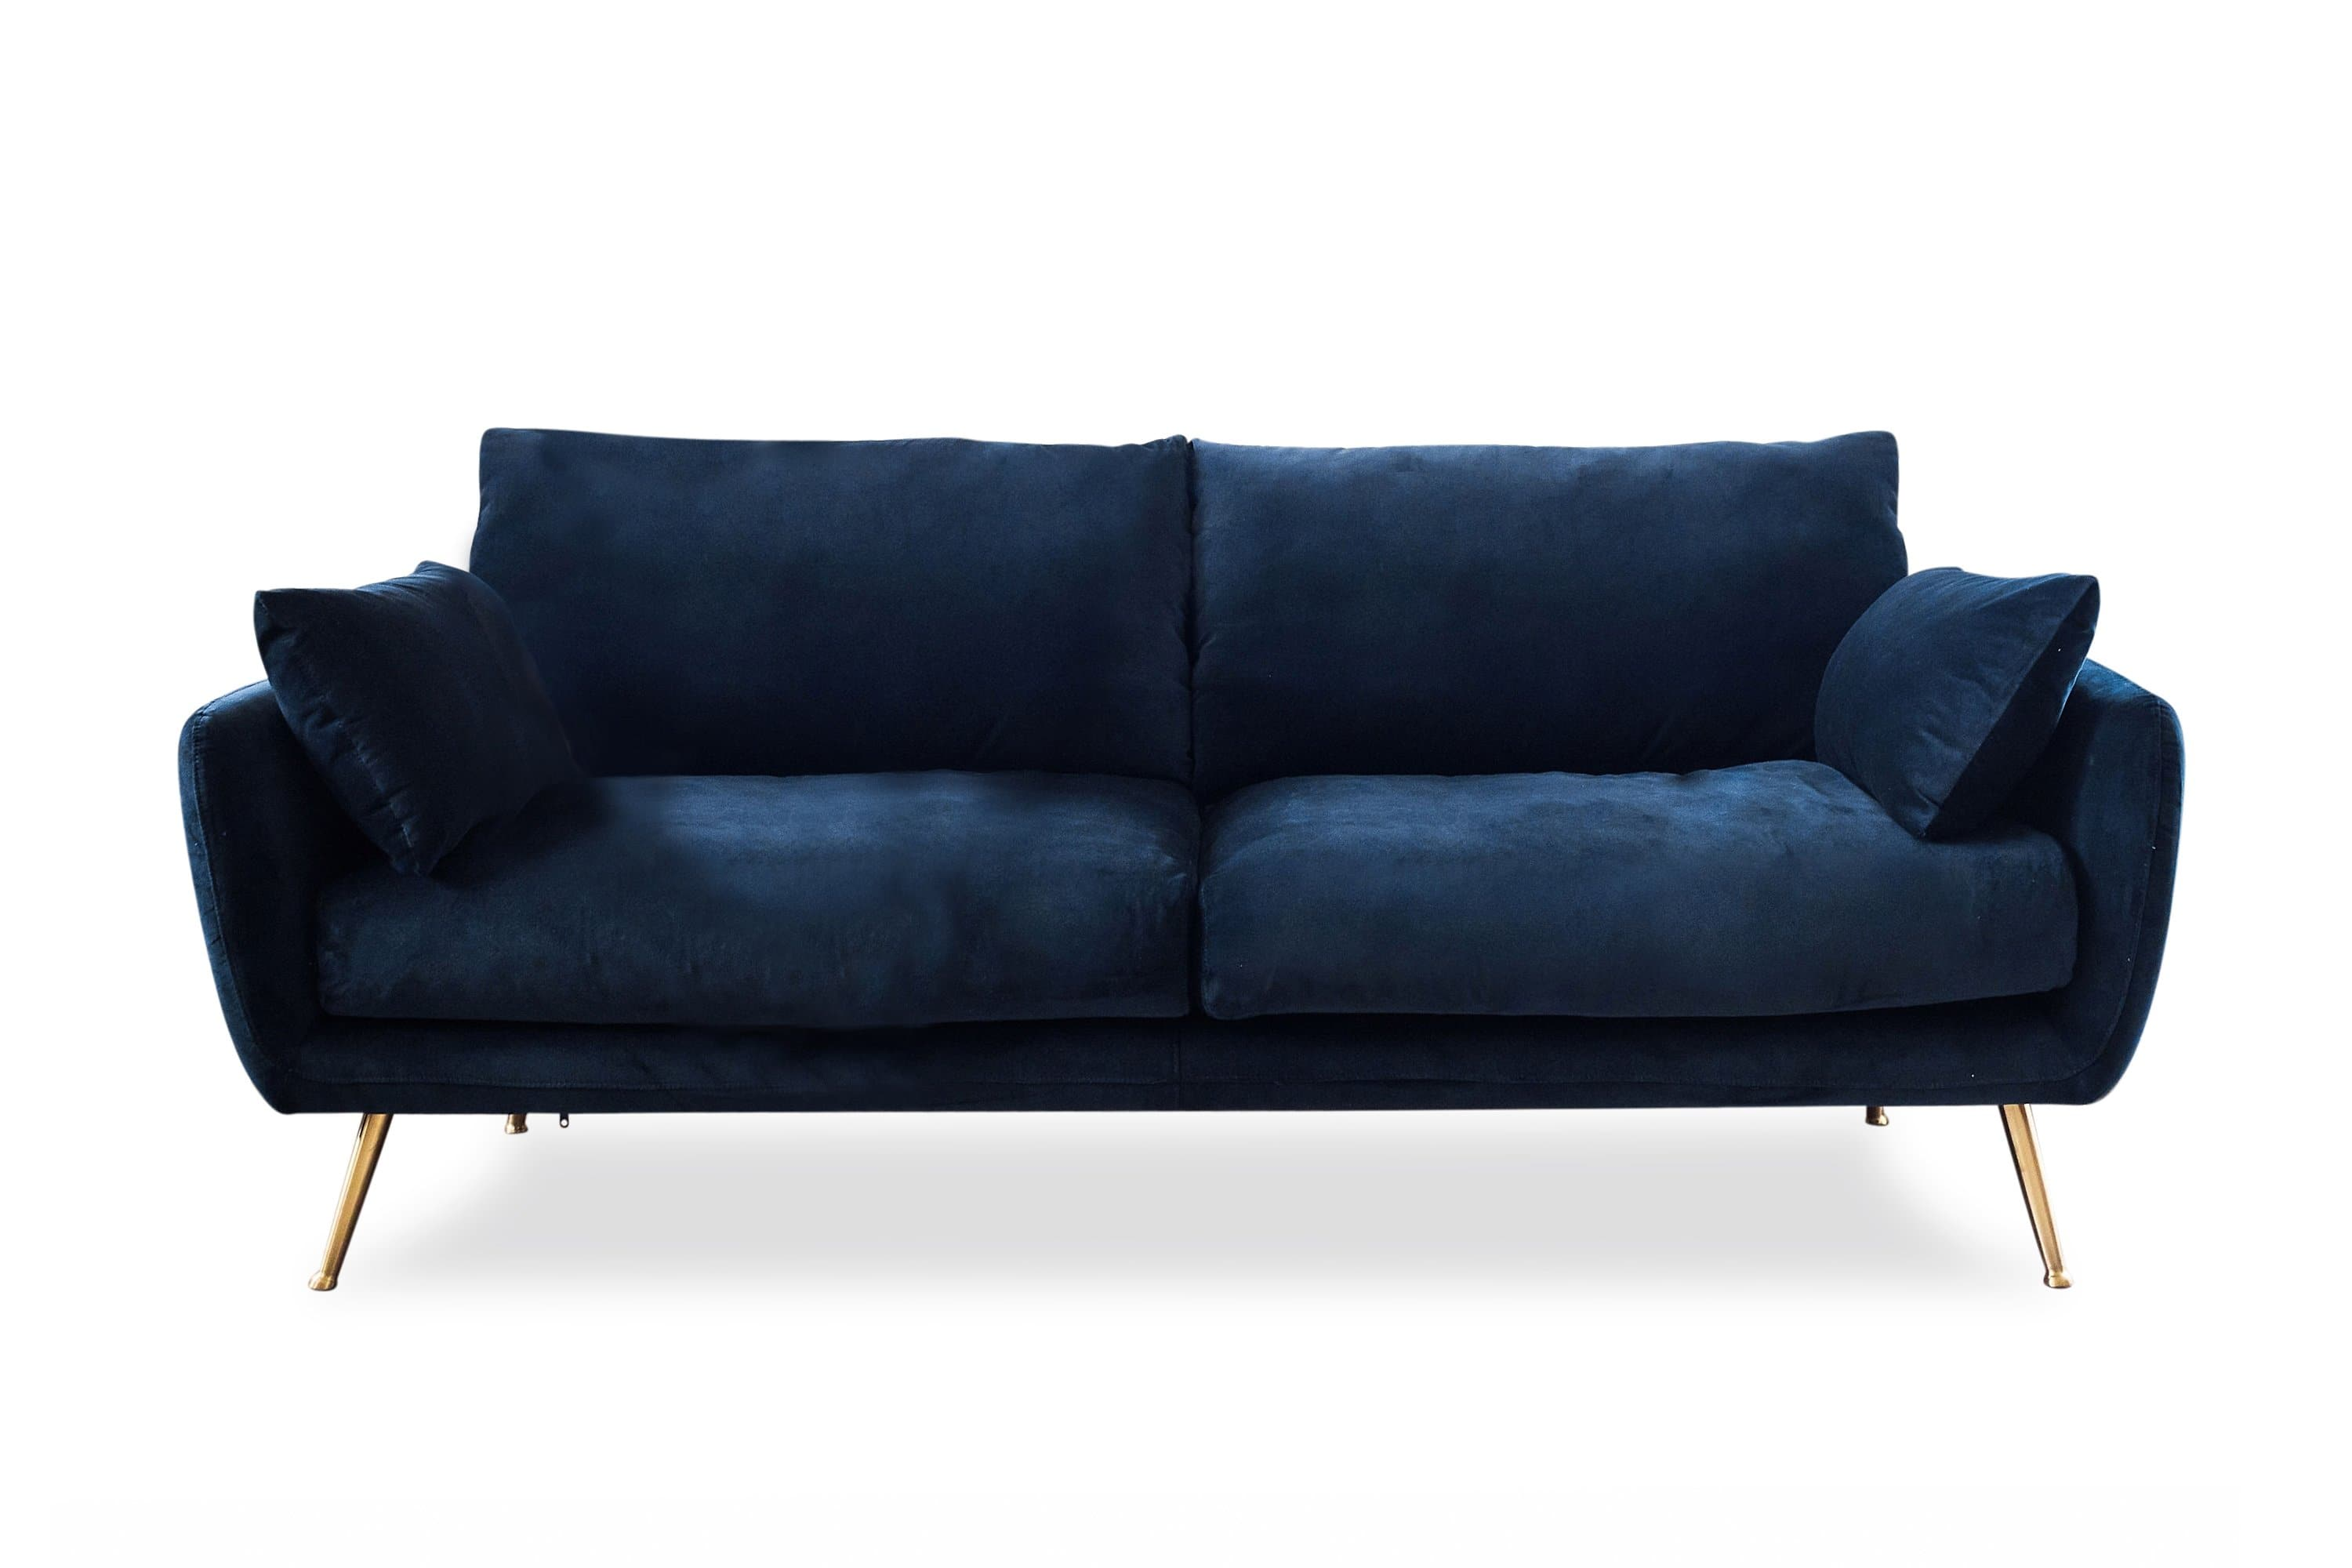 Harlow Sofa (Blue Velvet) - Edloe Finch Furniture Co.